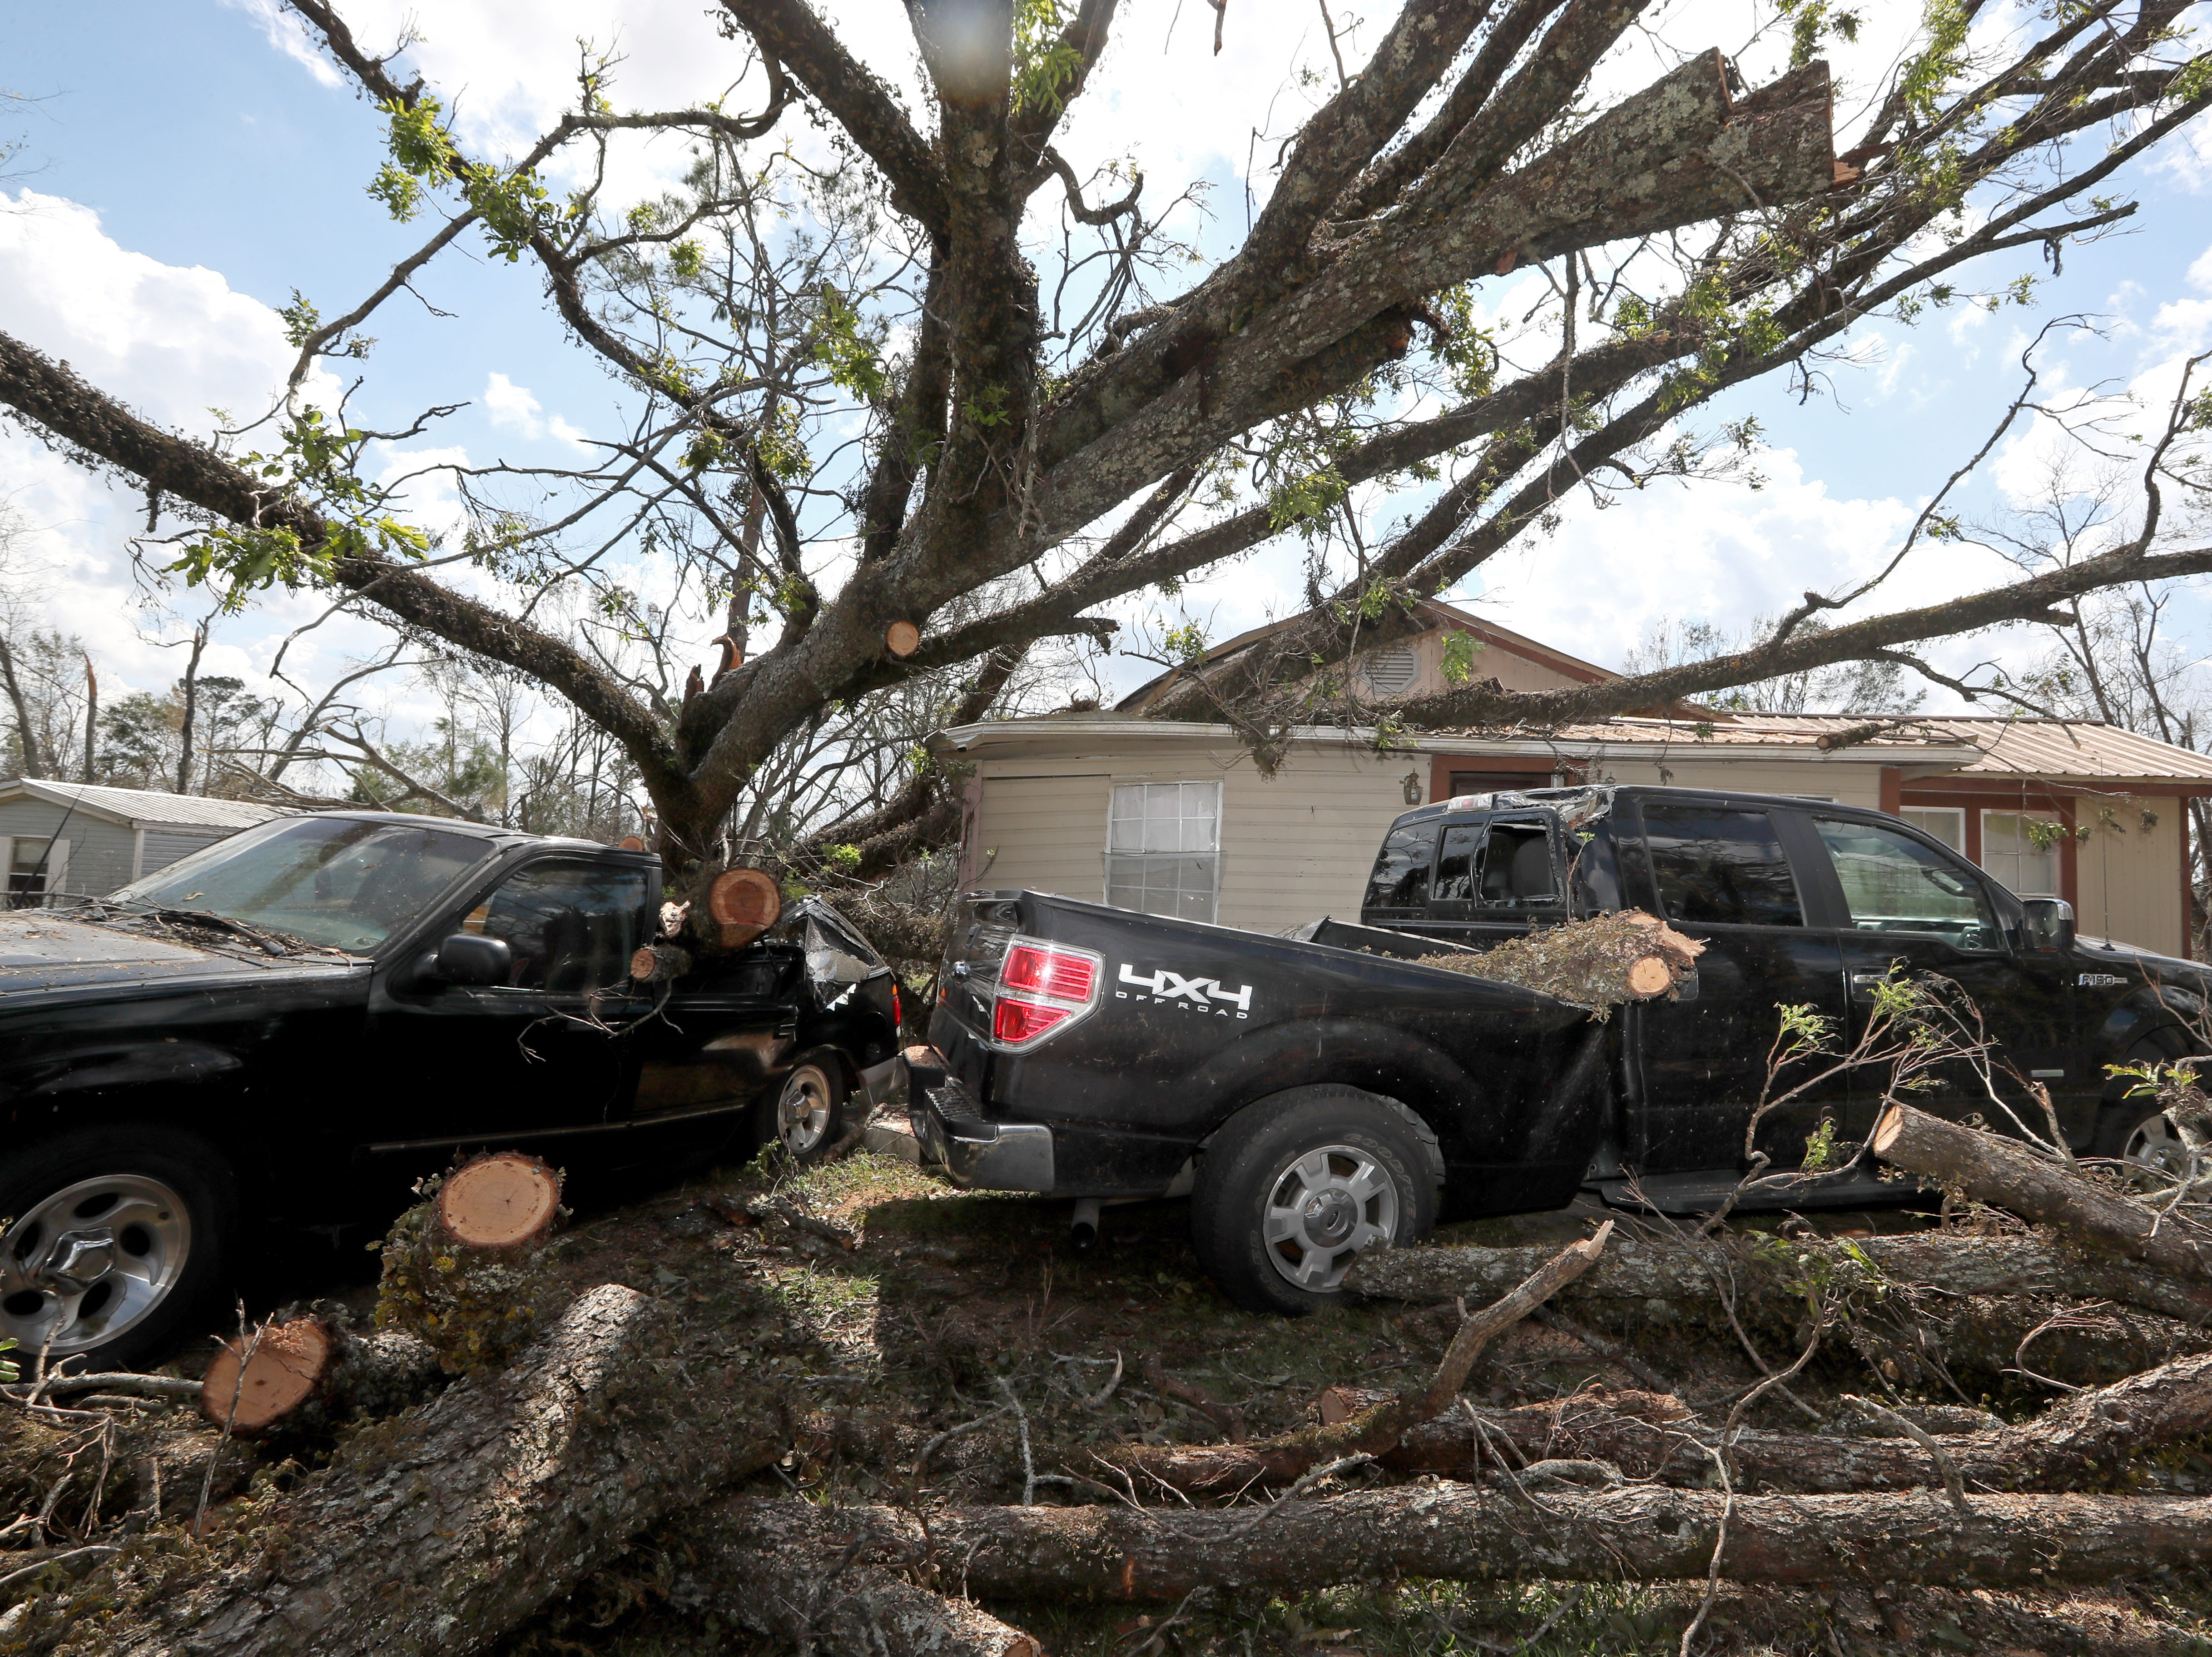 Carolyn Ortega's two Ford trucks are left smashed outside the front of her home in Sneads, Fla. where she waited out Hurricane Michael with her family.